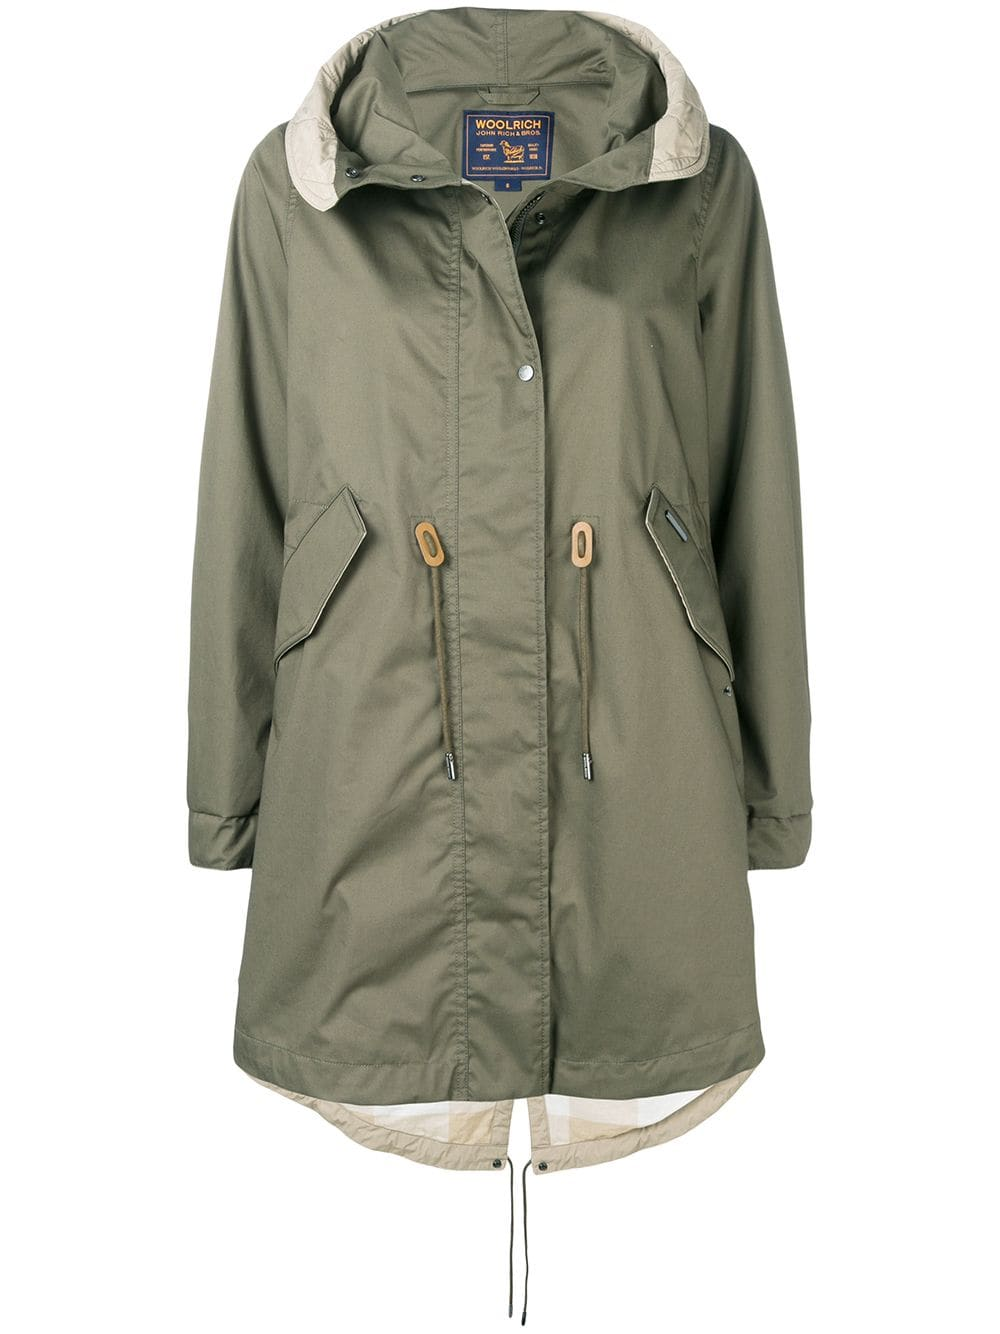 3da26e05f5a Woolrich hooded parka coat - Green in 2019 | Products | Hooded parka ...